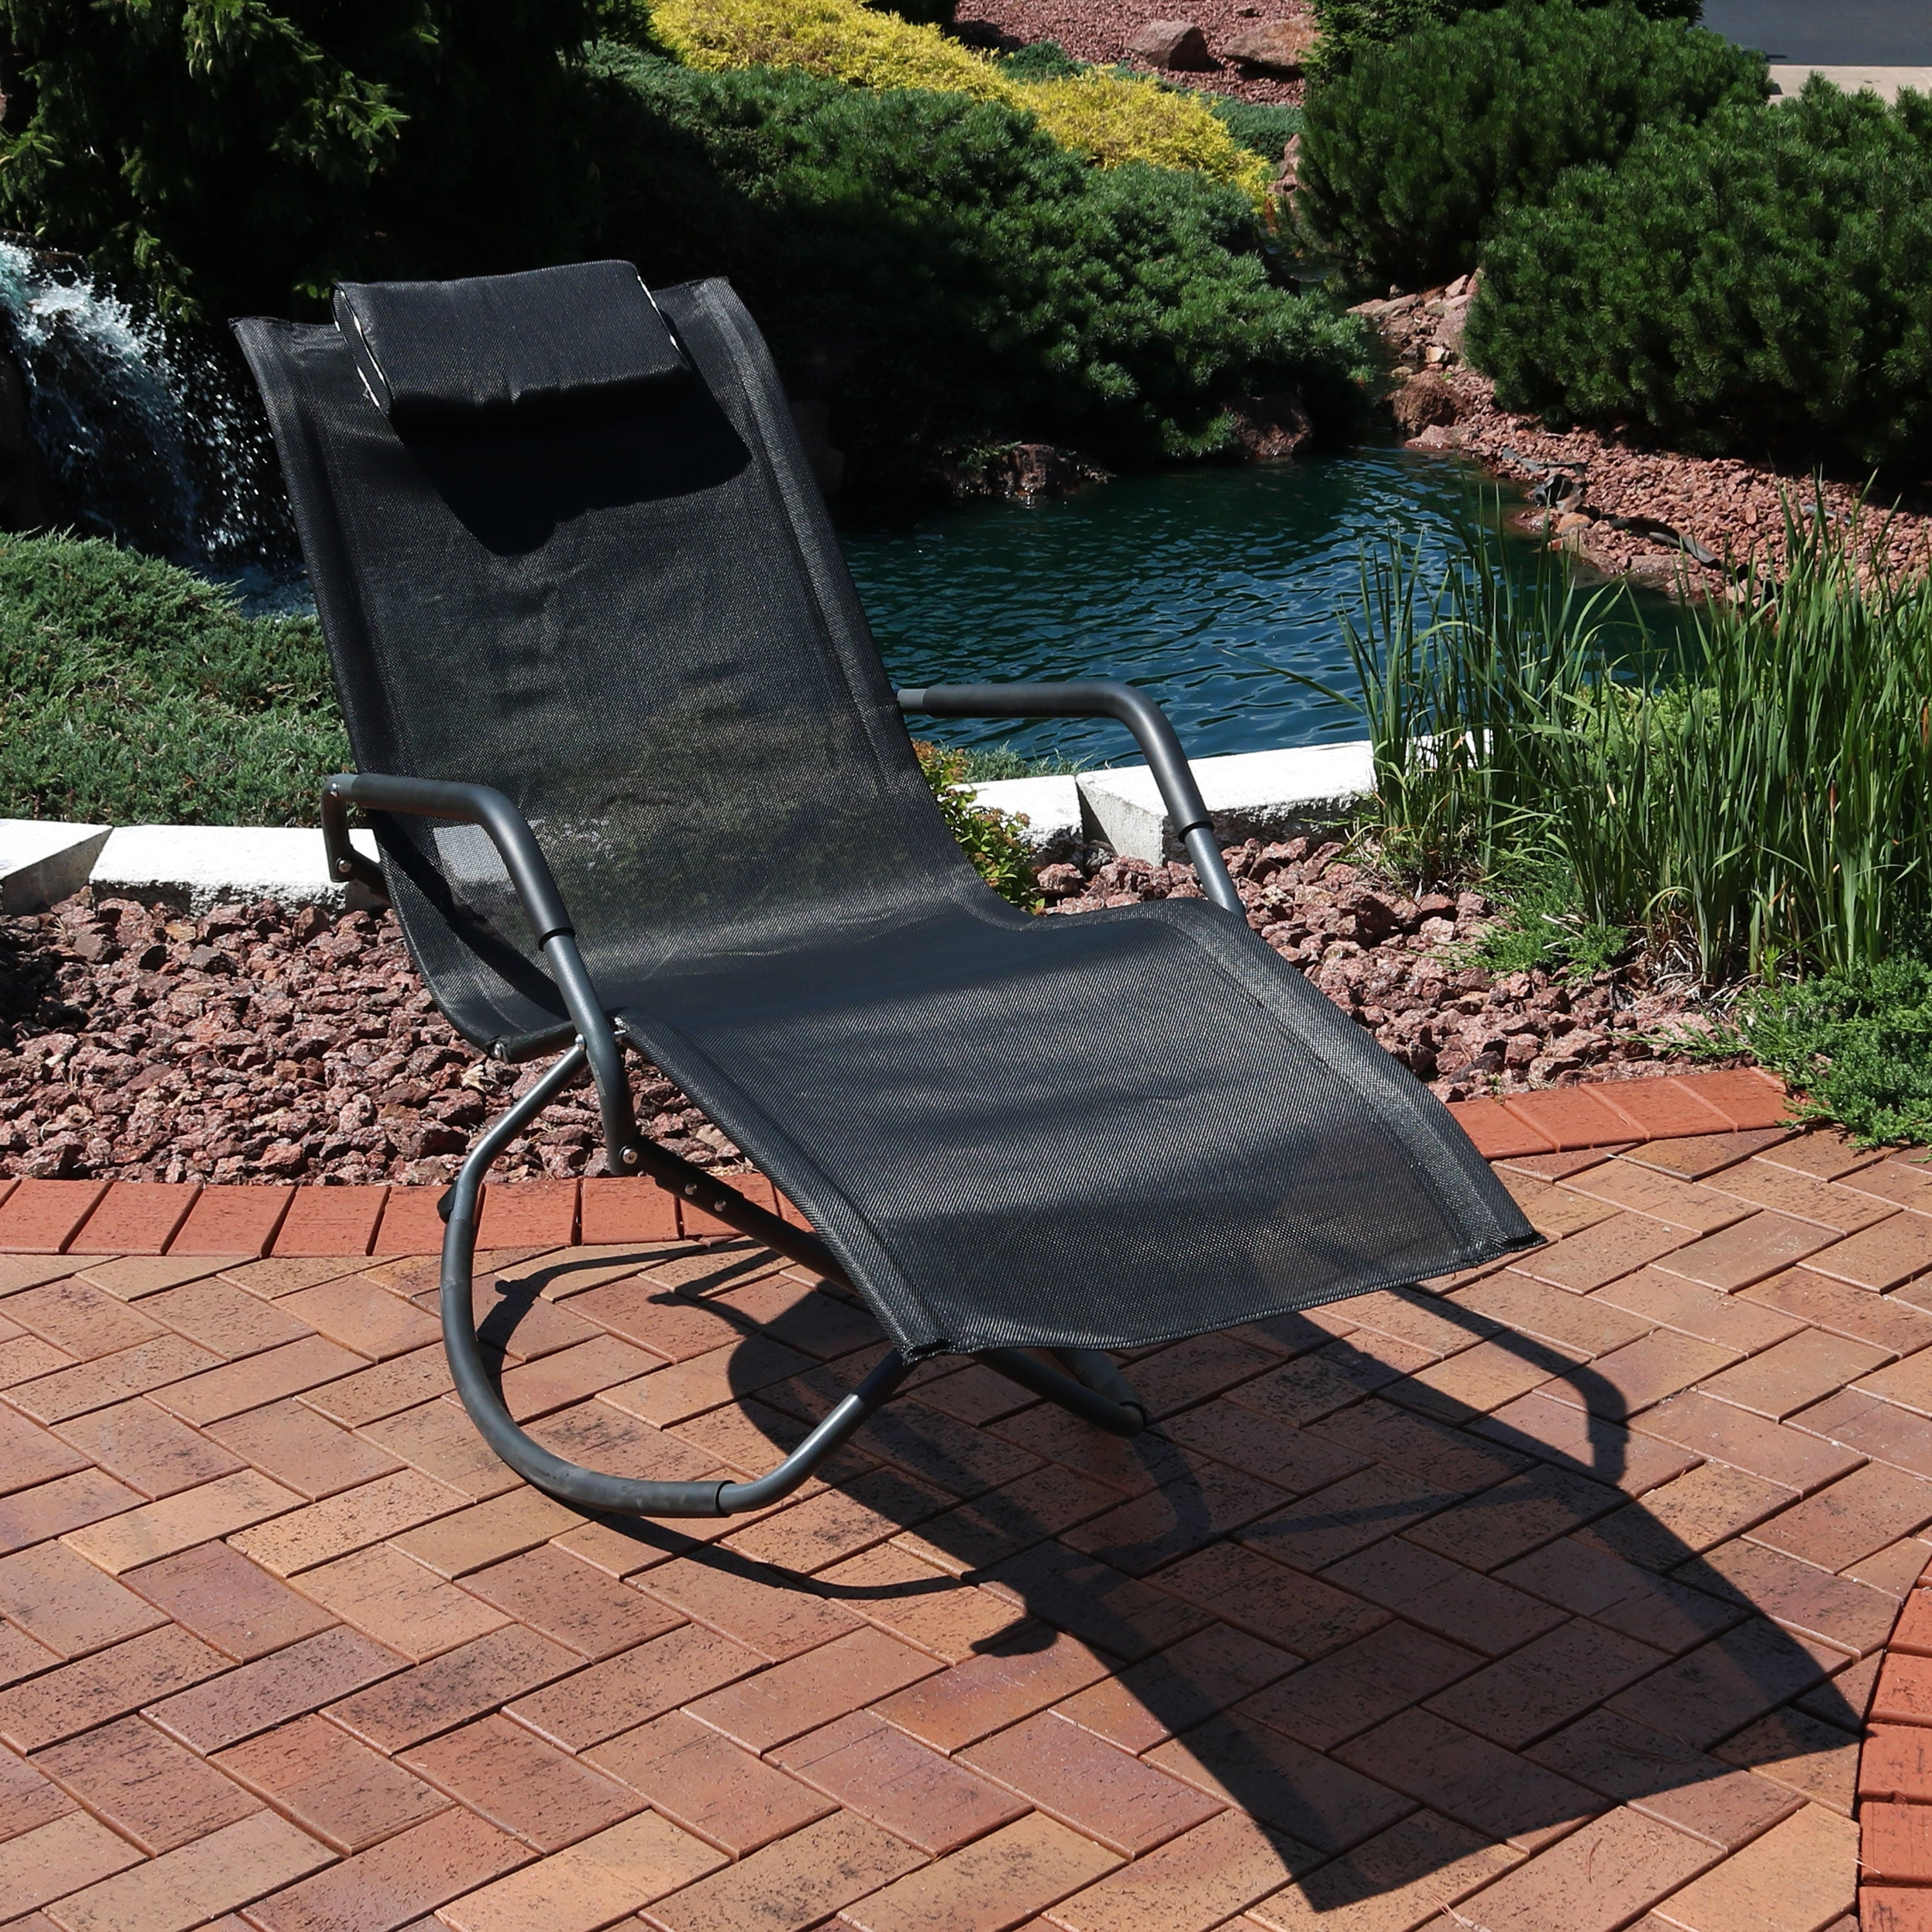 Sunnydaze Outdoor Folding Rocking Chaise Lounger With Headrest Pillow –  Black – Single Intended For Current Outdoor Rocking Loungers (View 22 of 25)